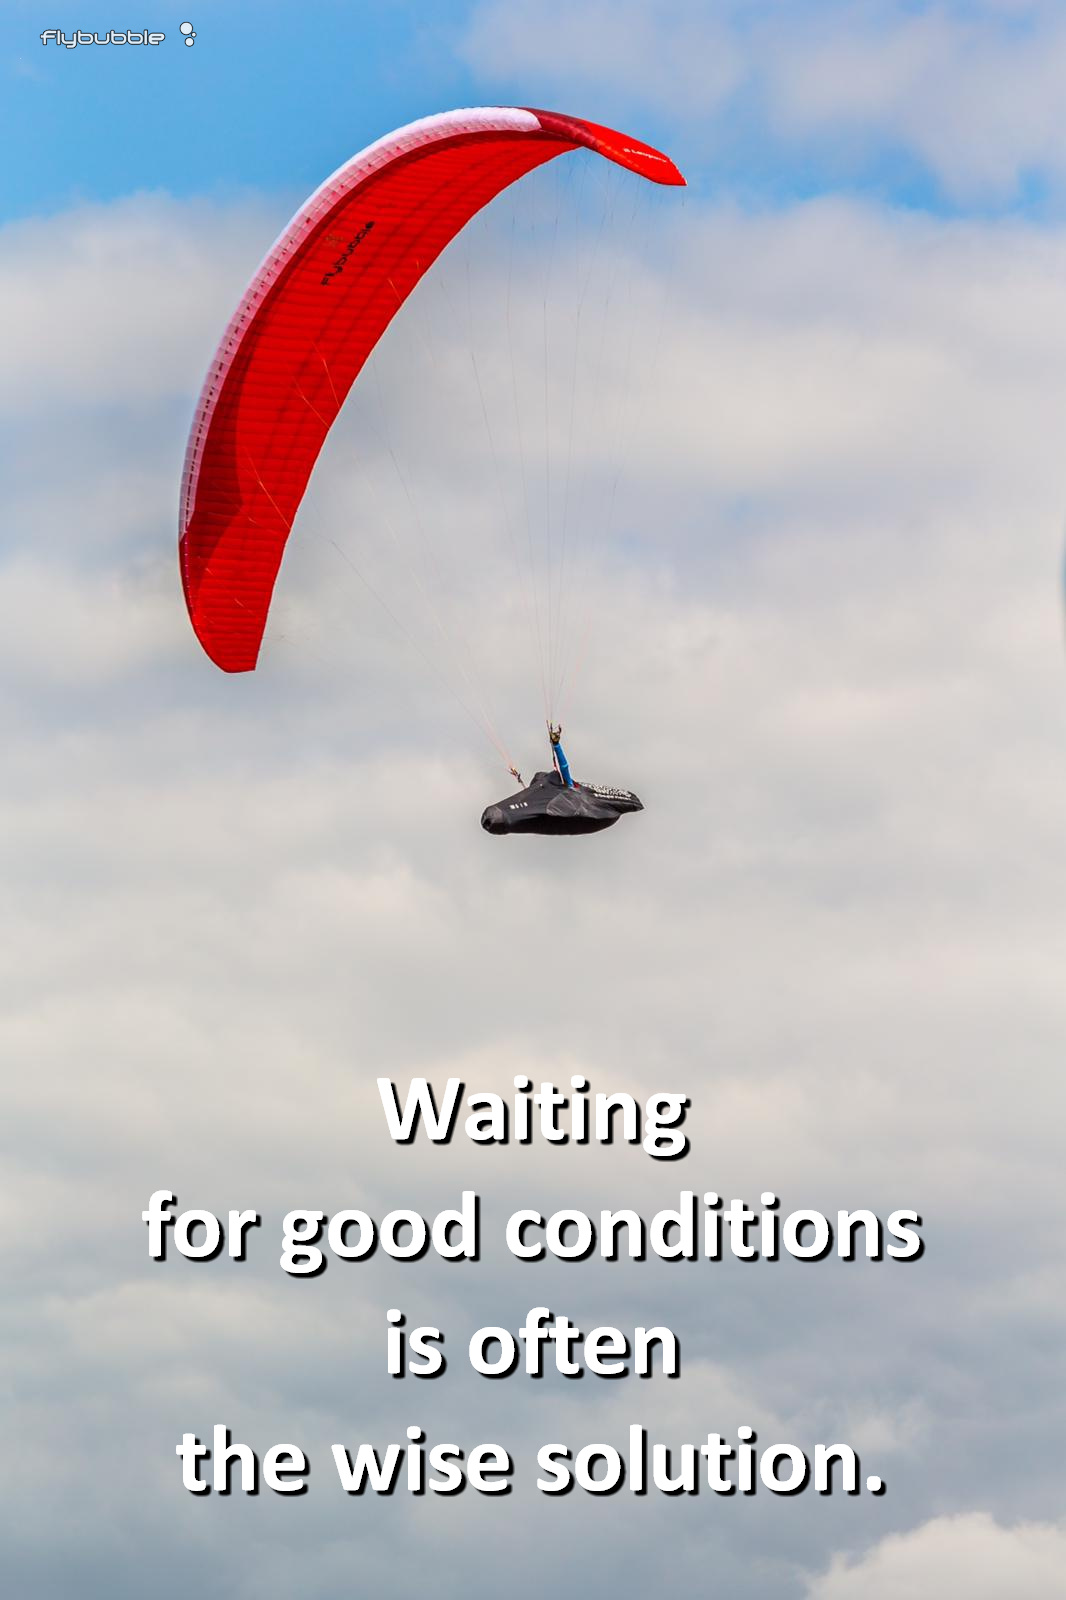 Waiting for good conditions is often the wise solution.